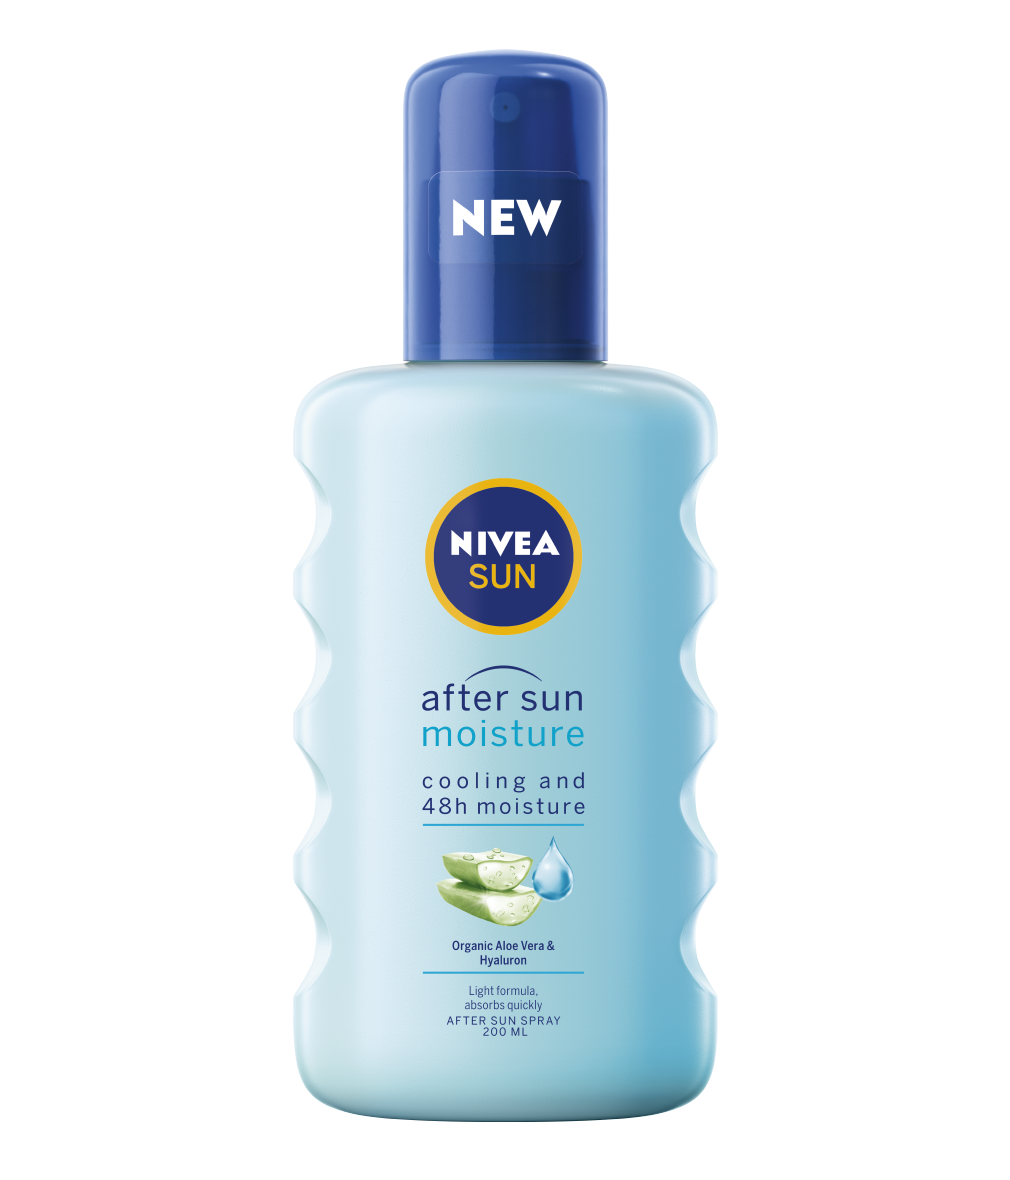 Nivea After Sun Lotion Moisture Spray With Aloe Vera Avocado Oil Hydrates 200ml Ebay